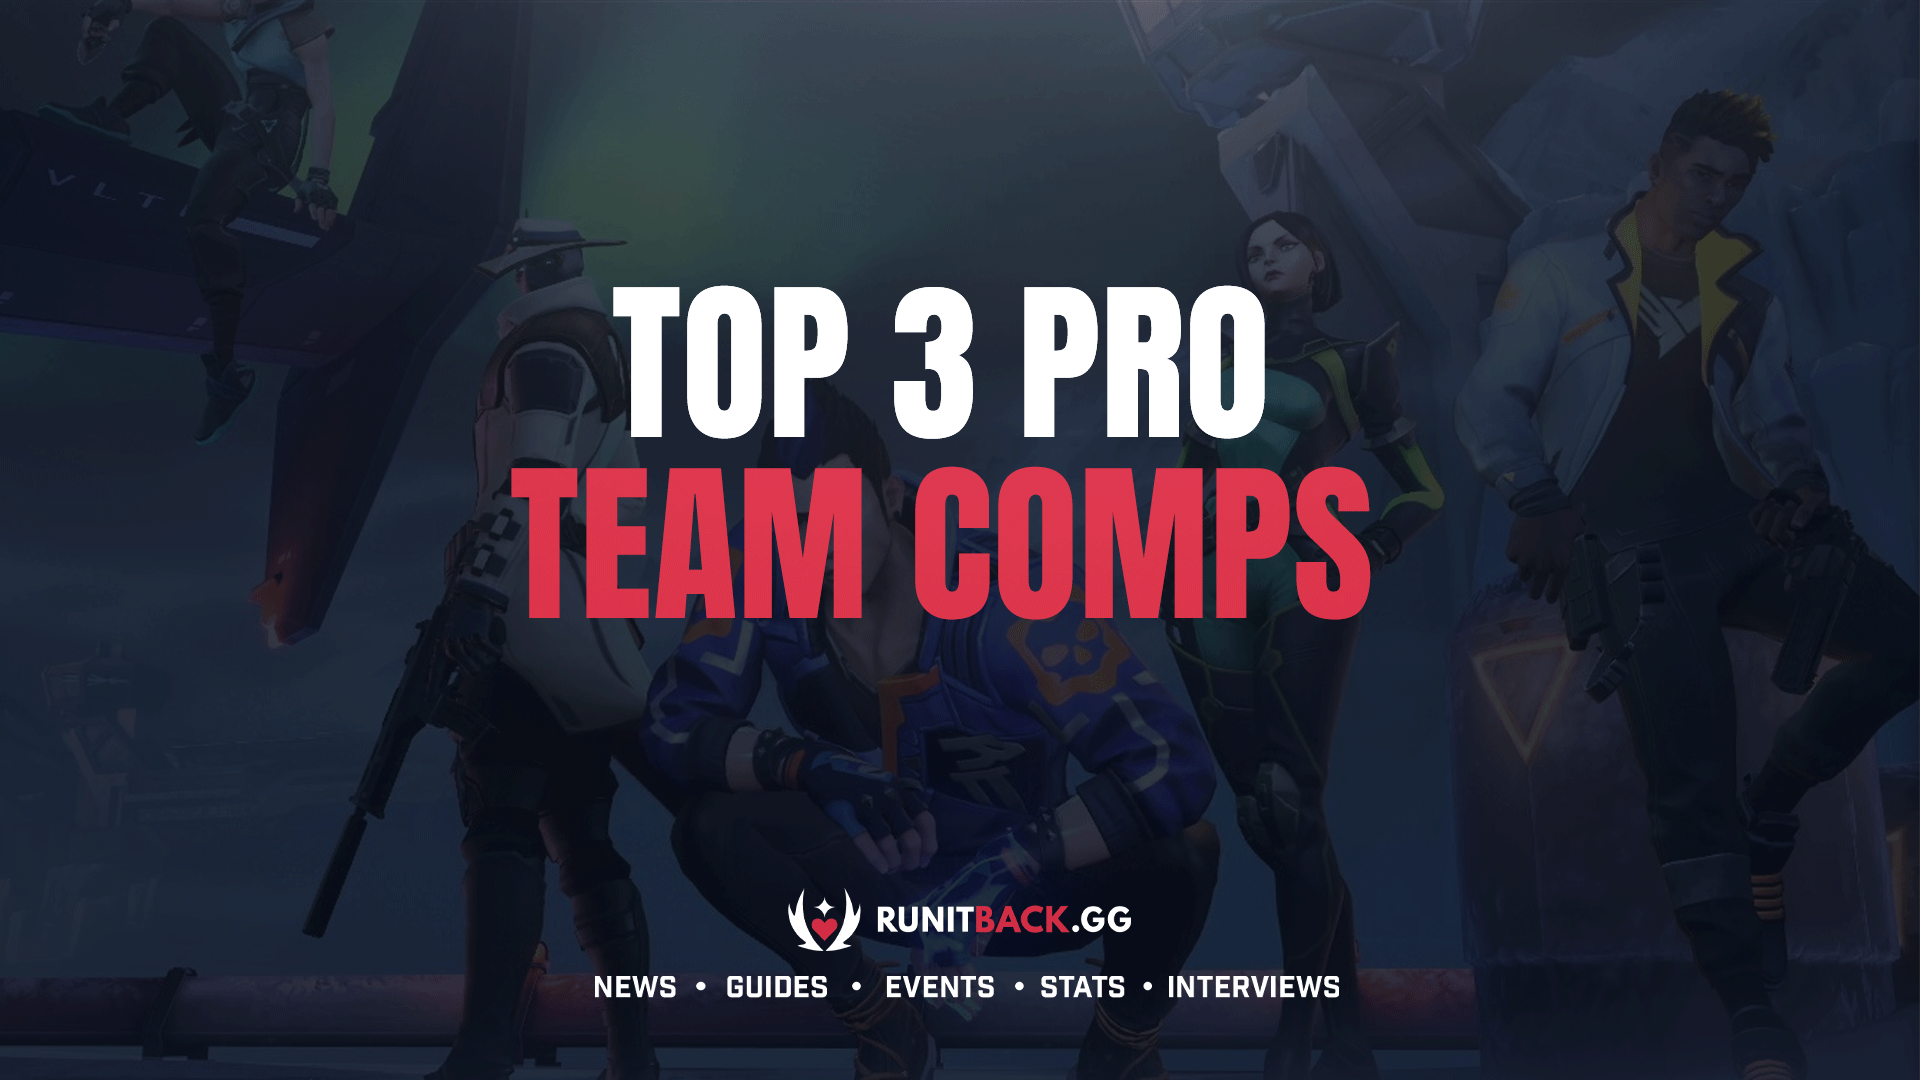 Top 3 Pro Team Comps (July 2021)